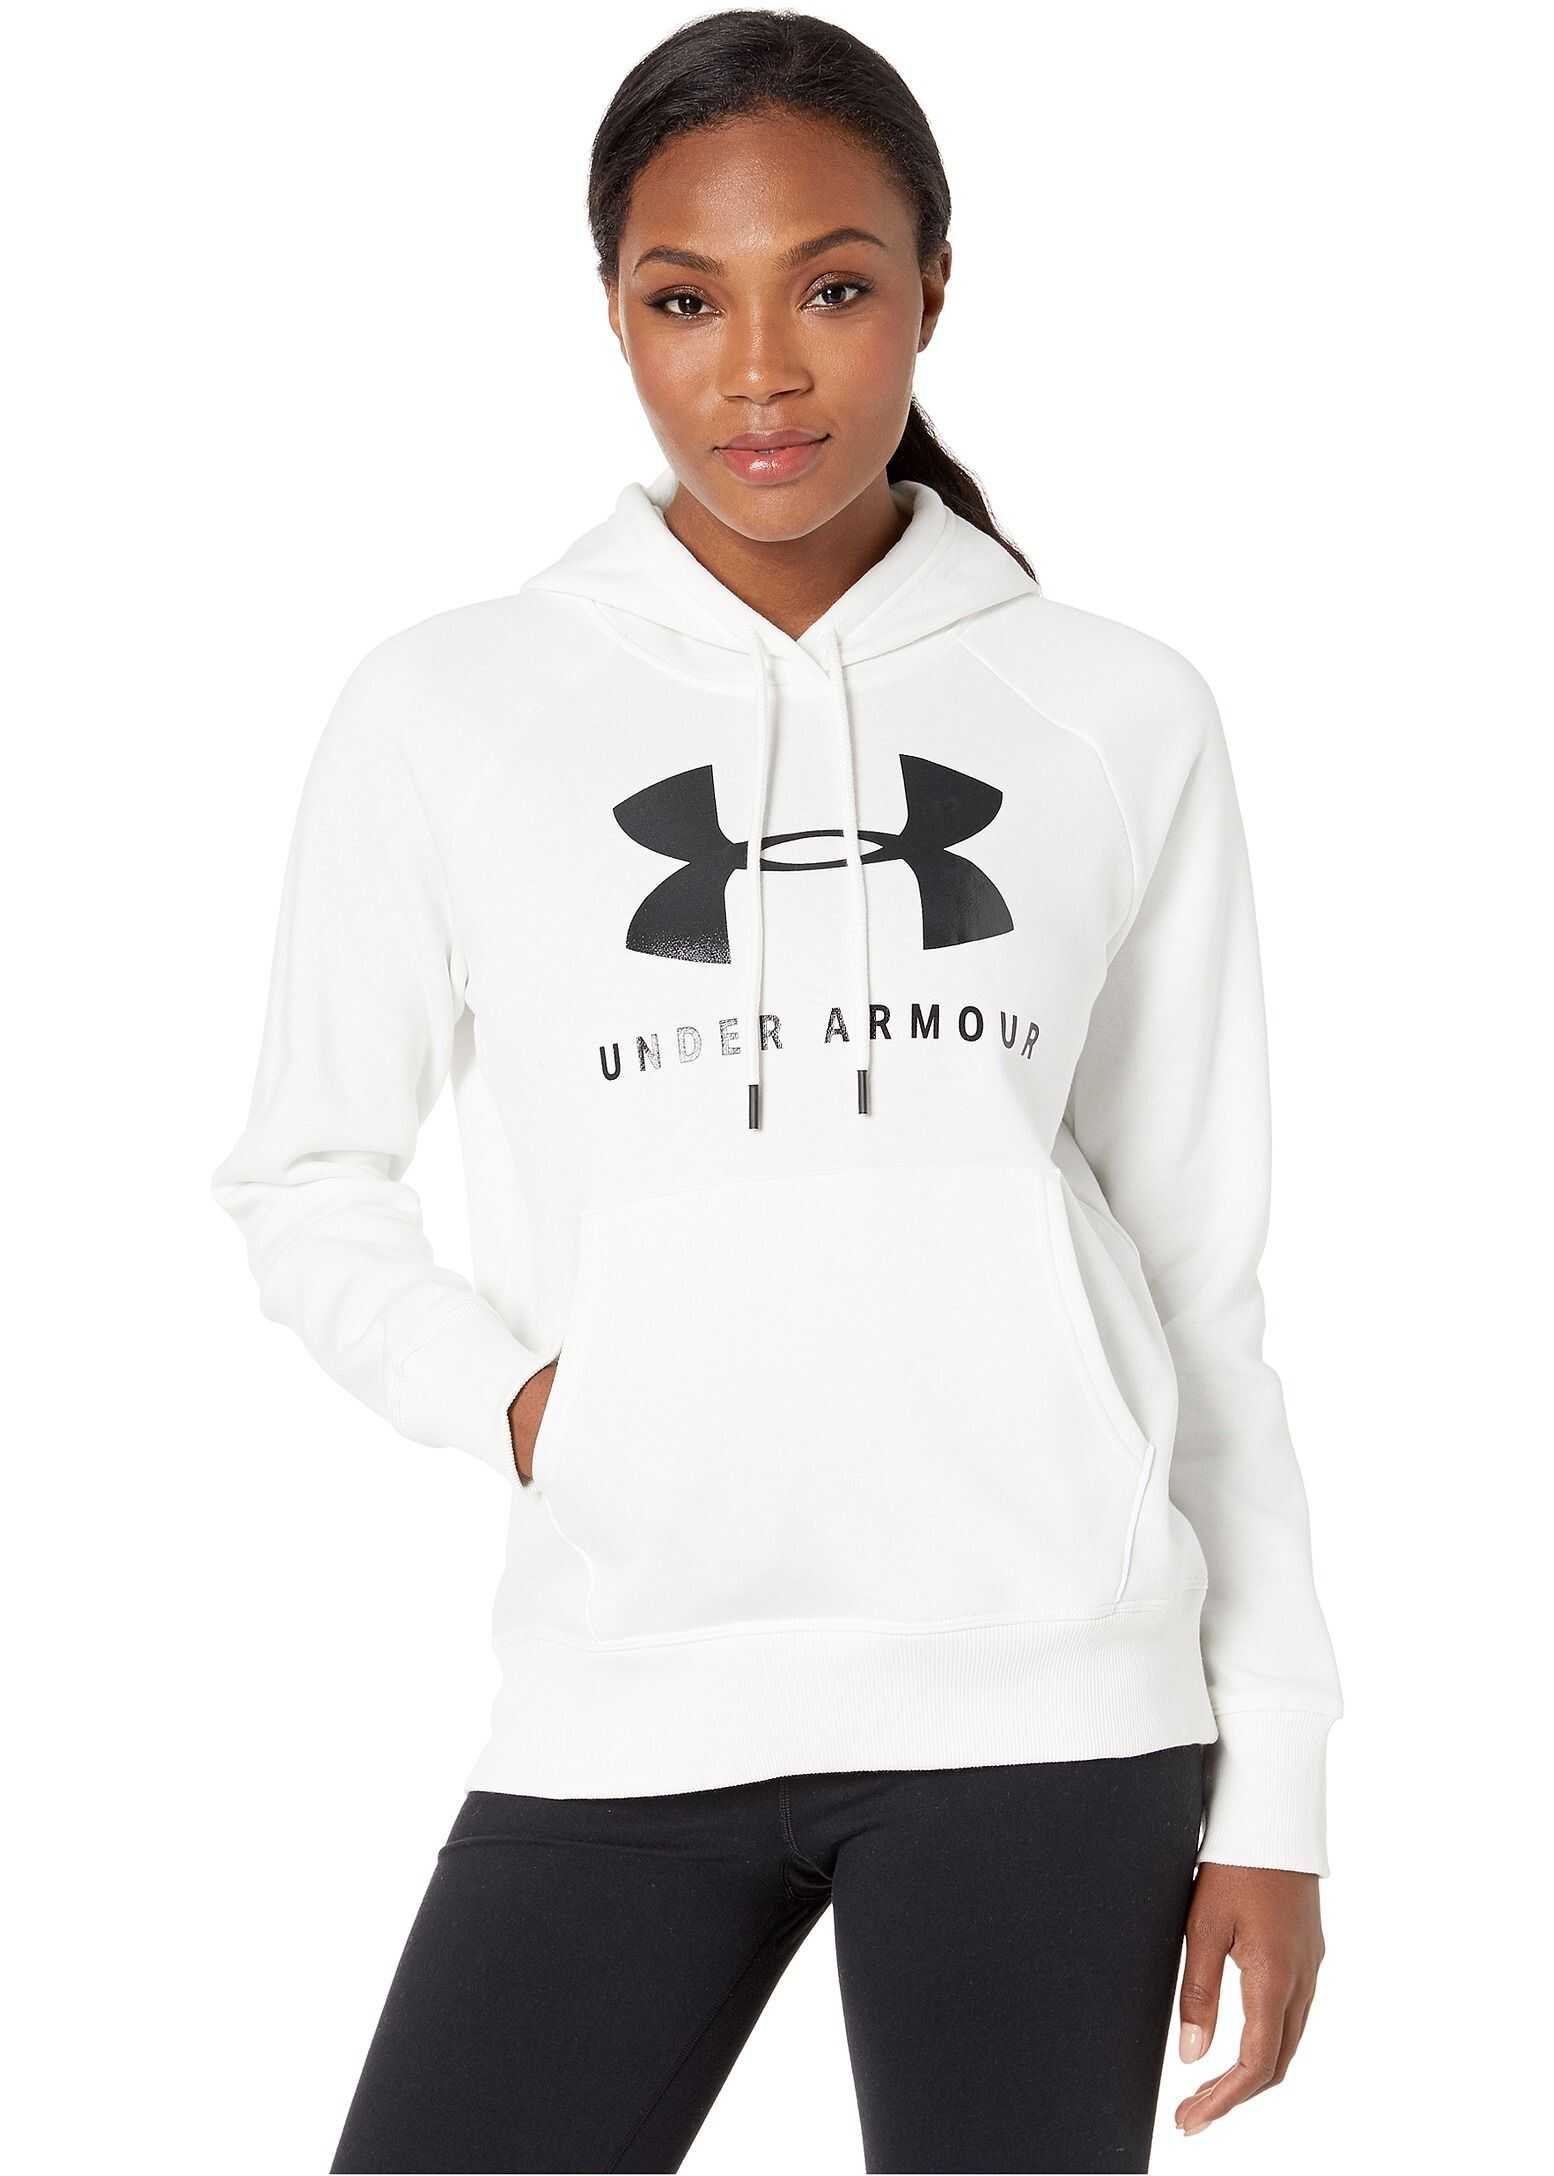 Under Armour Rival Fleece Sportstyle Graphic Hoodie Onyx White/Black